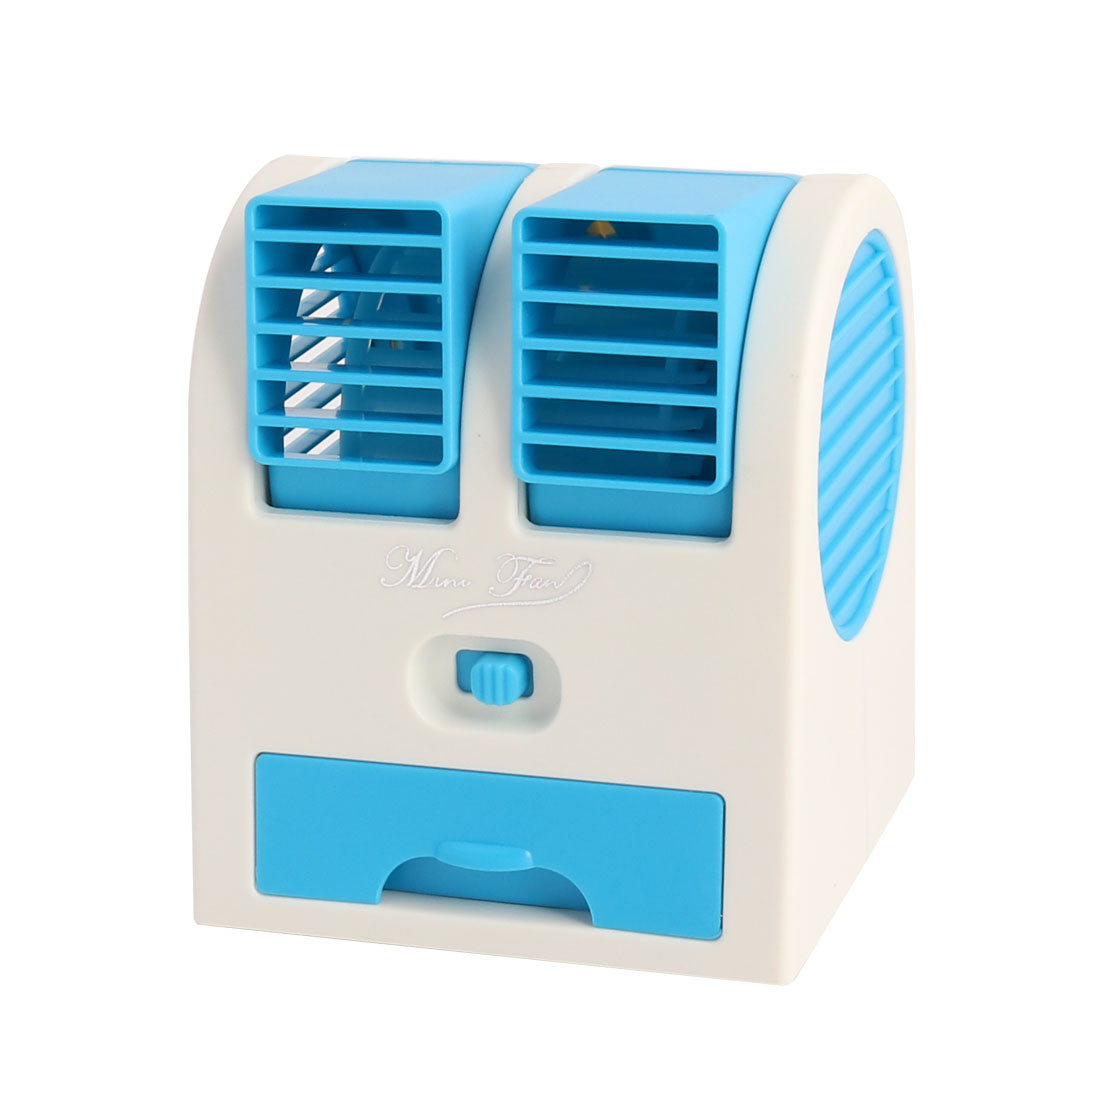 Small USB Powered Cooling Bladeless Handheld Fan Desktop Air Conditioner Blue